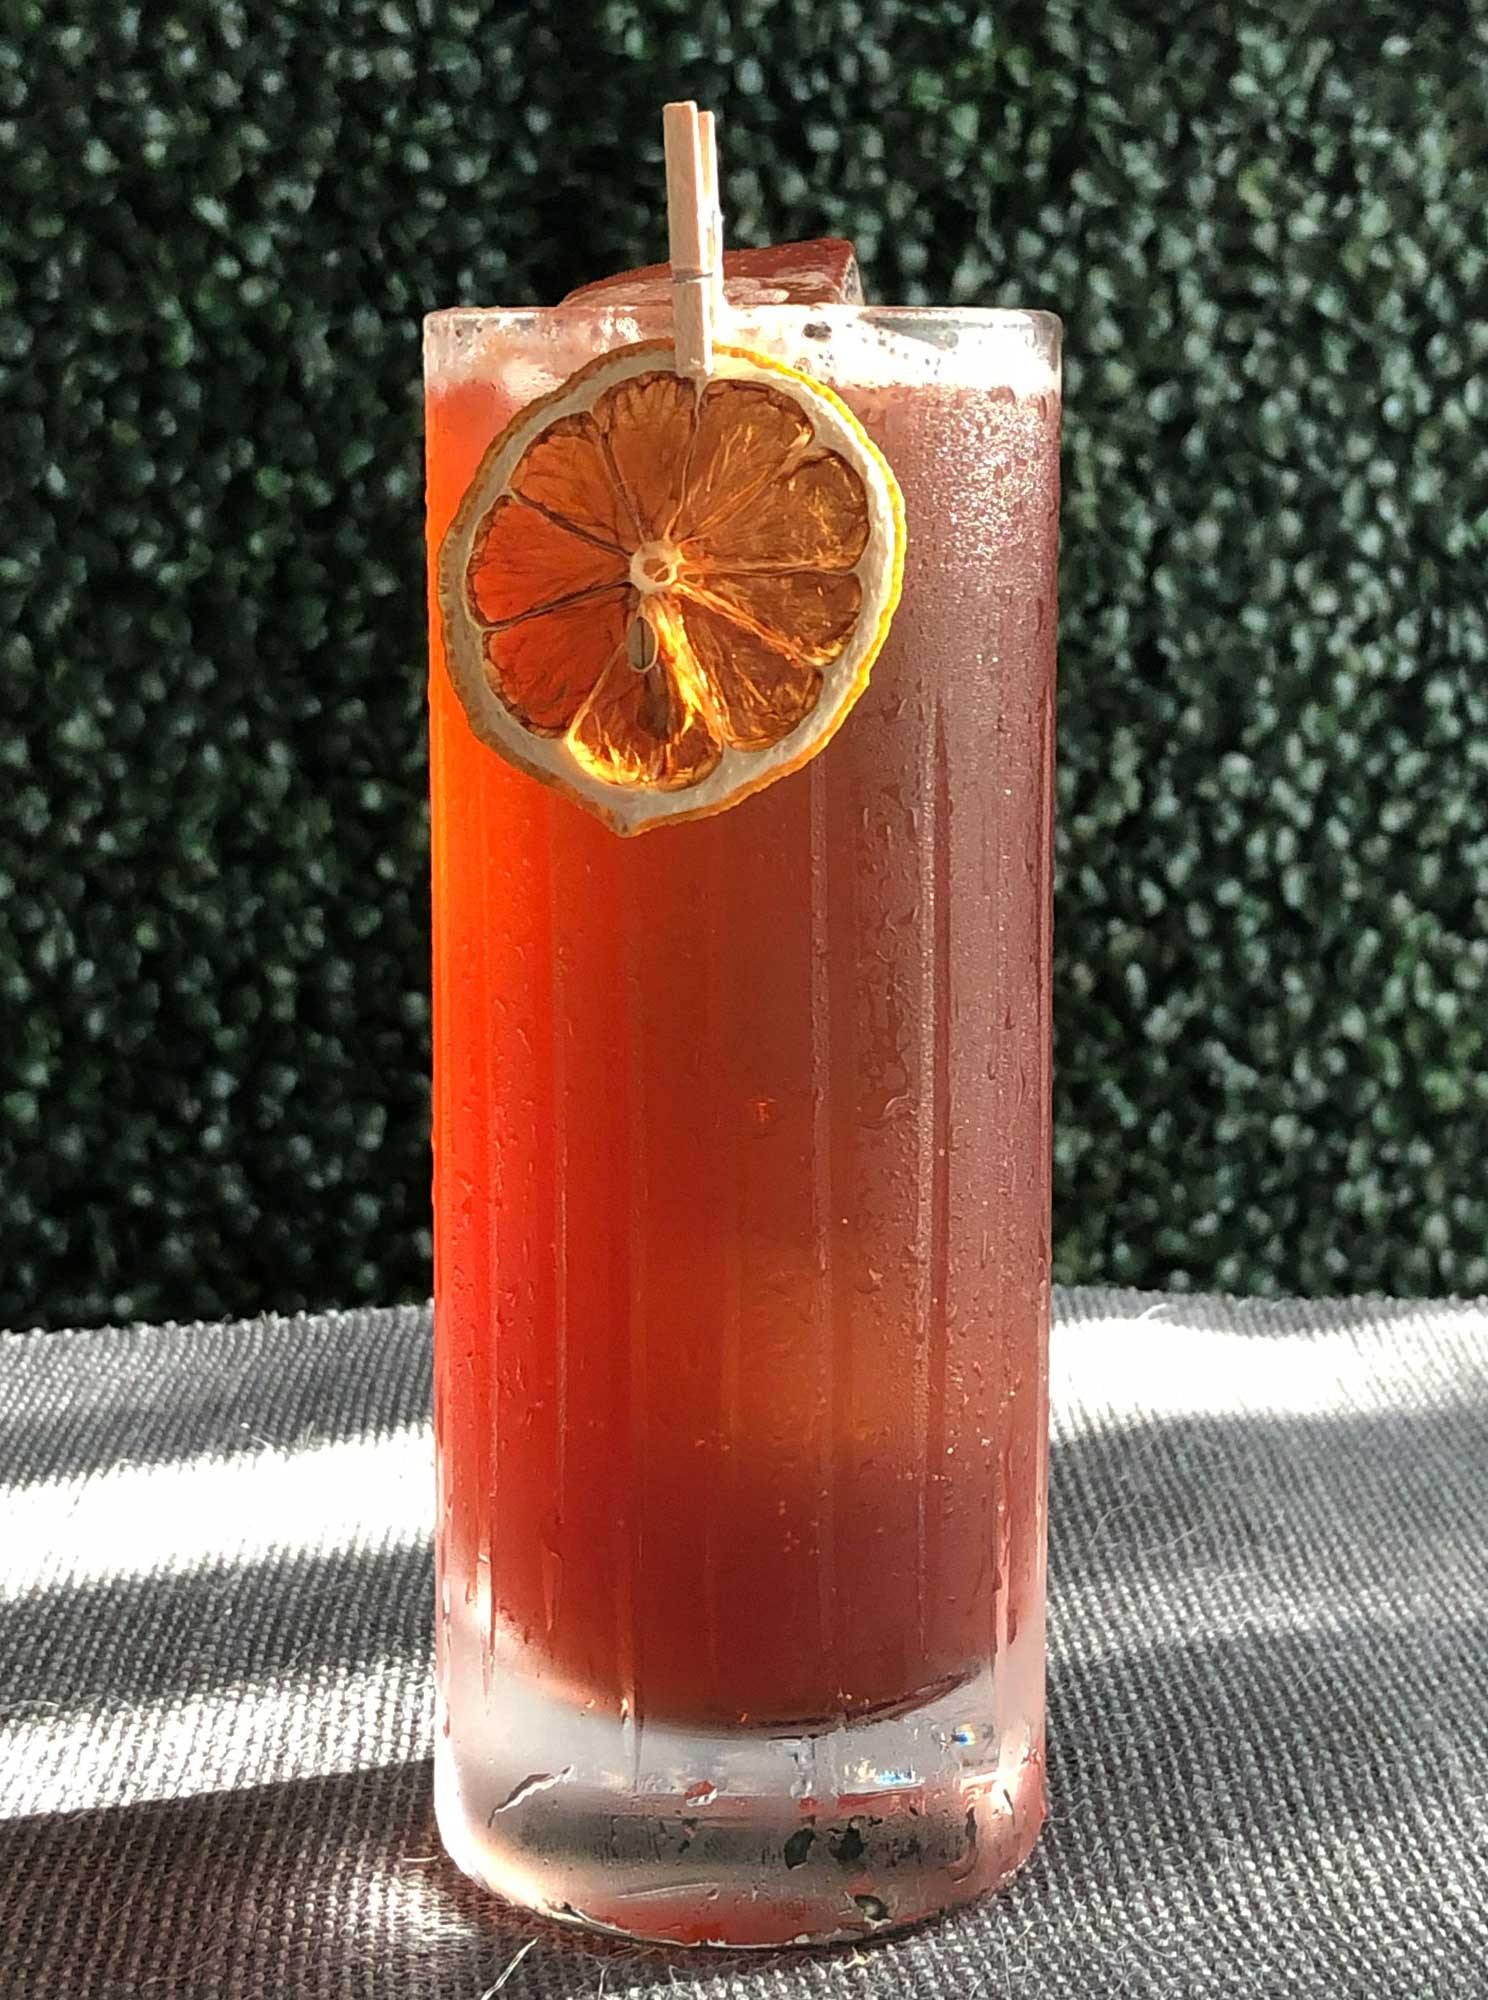 An example of the Damson Gin Fizz, the mixed drink (fizz) featuring soda water, Averell Damson Plum Gin Liqueur, and lemon juice; photo by Lee Edwards